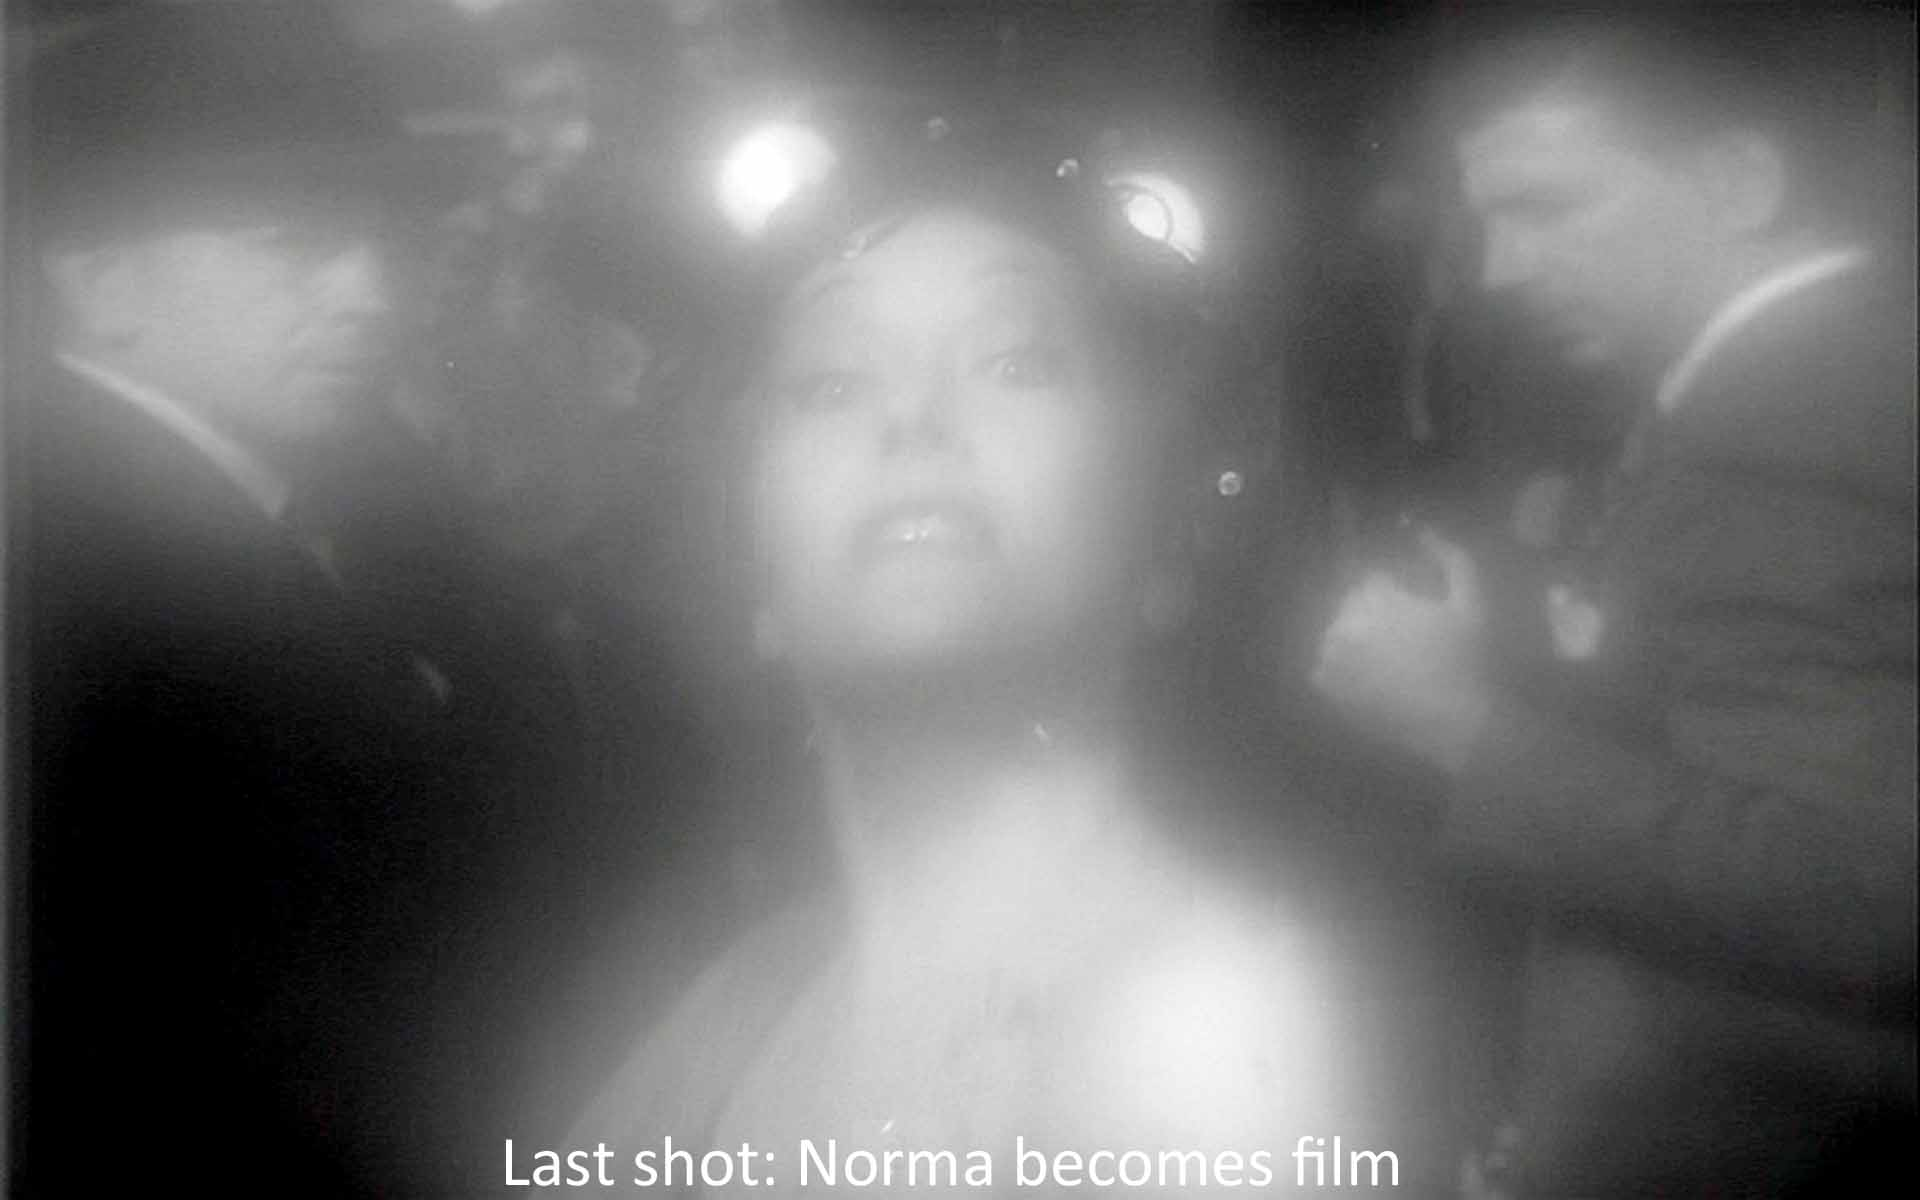 Last shot: Norma becomes film